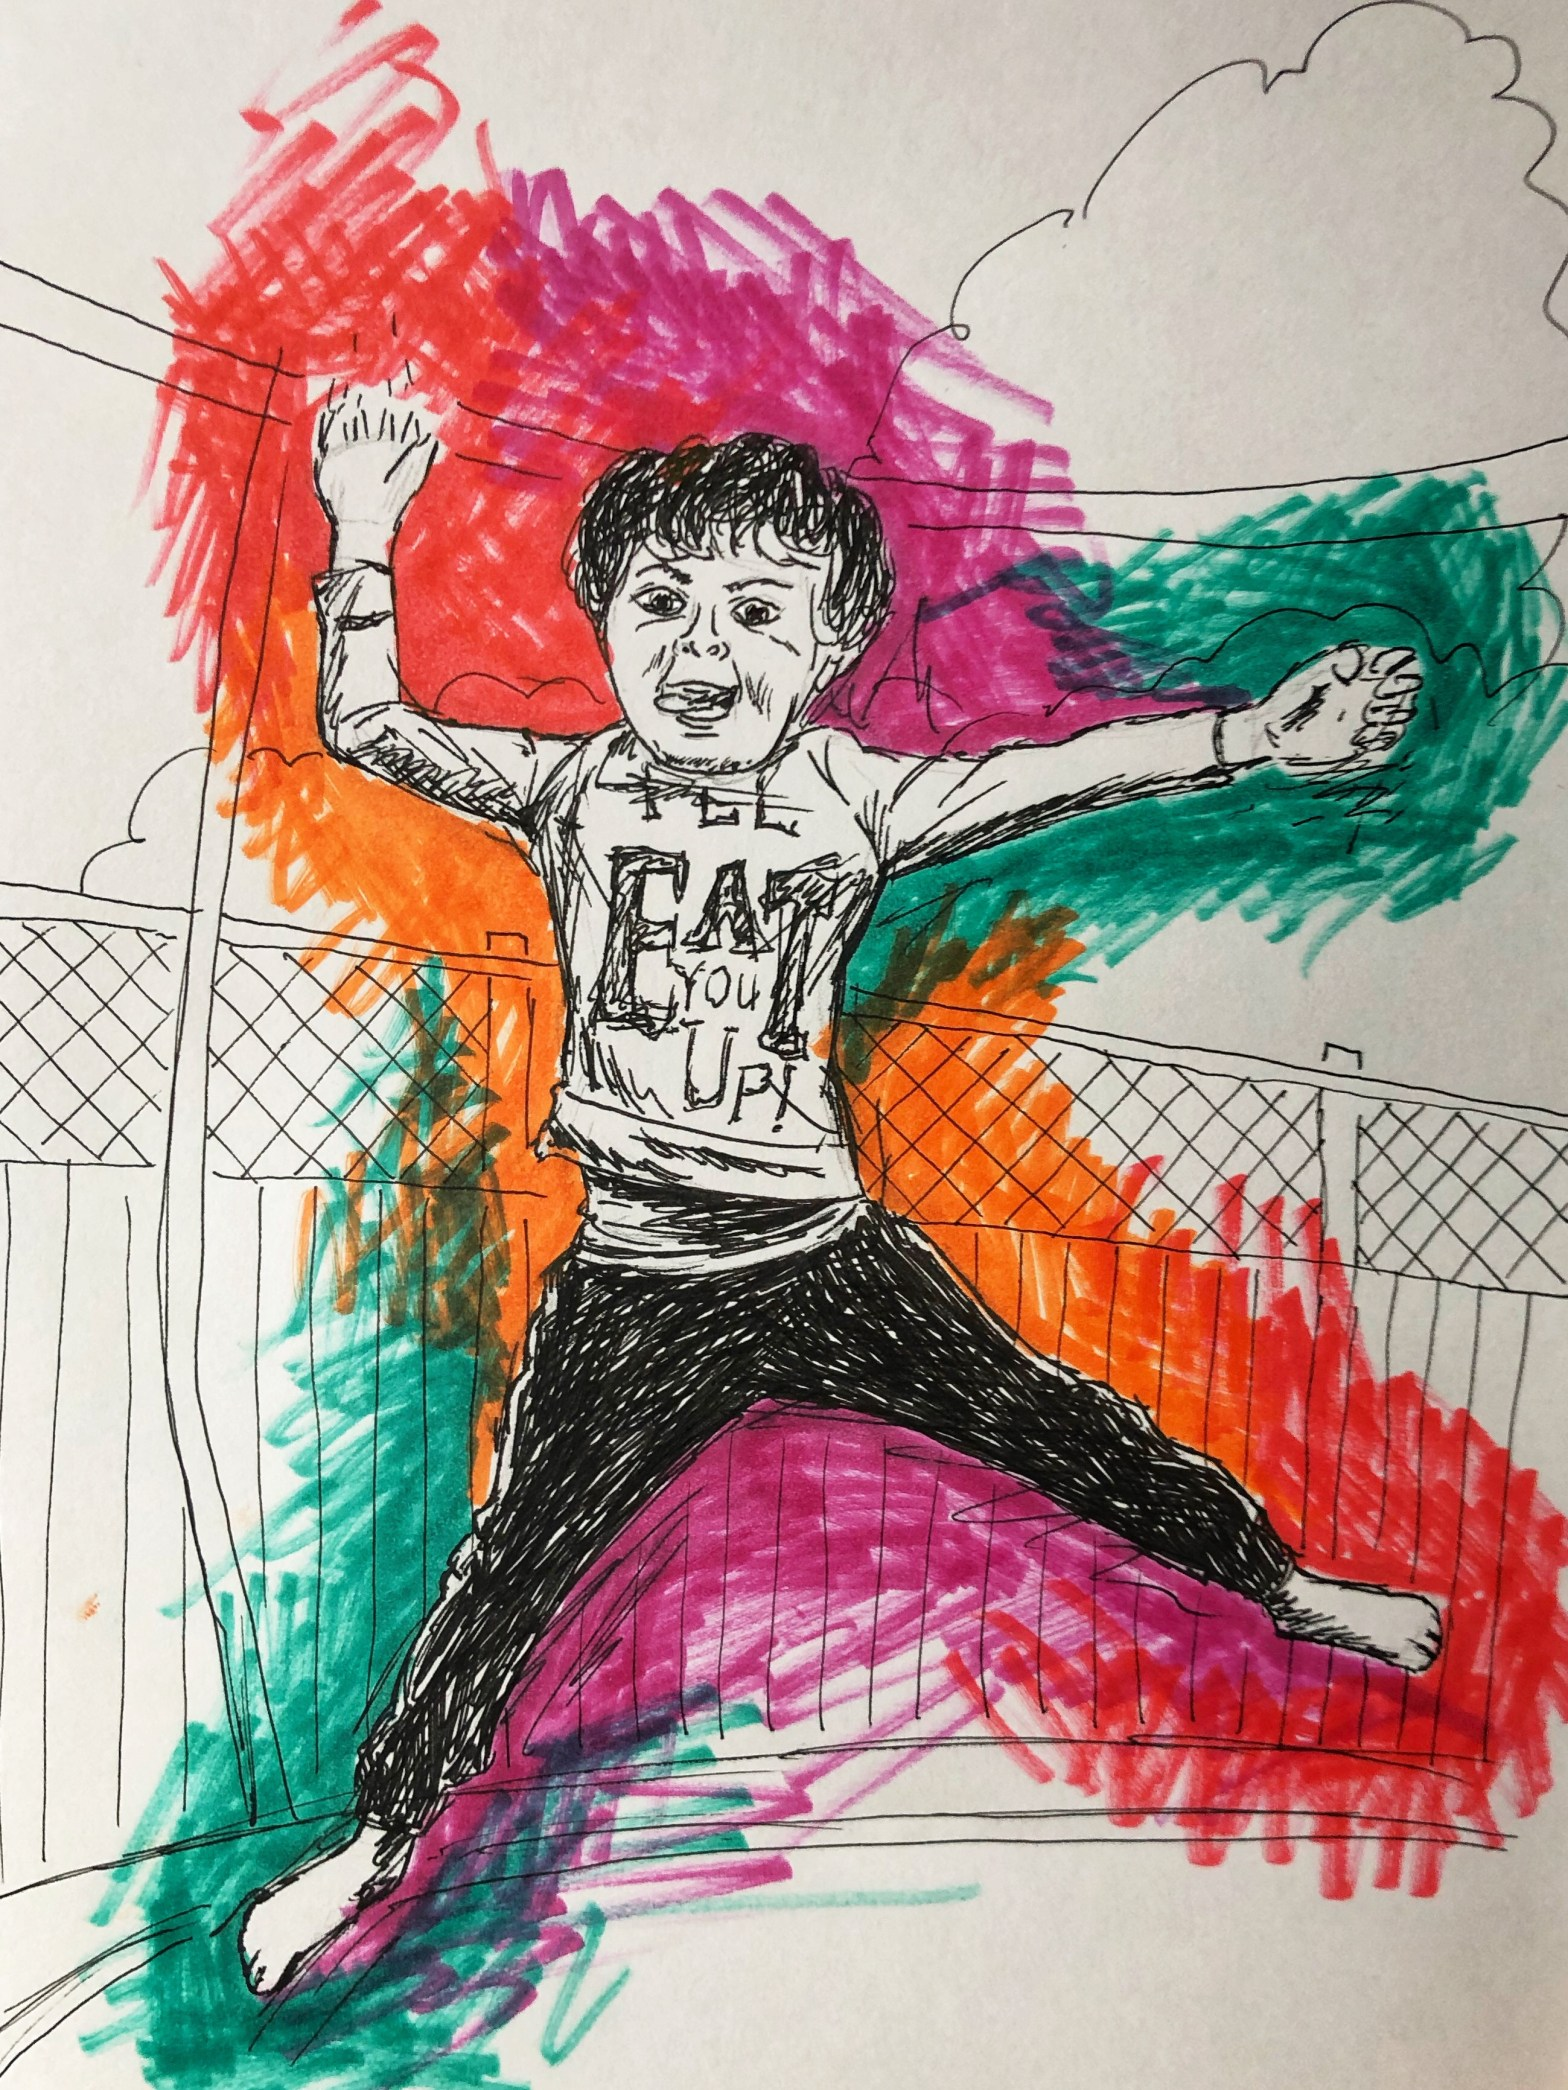 Color illustration of boy jumping with tongue out.